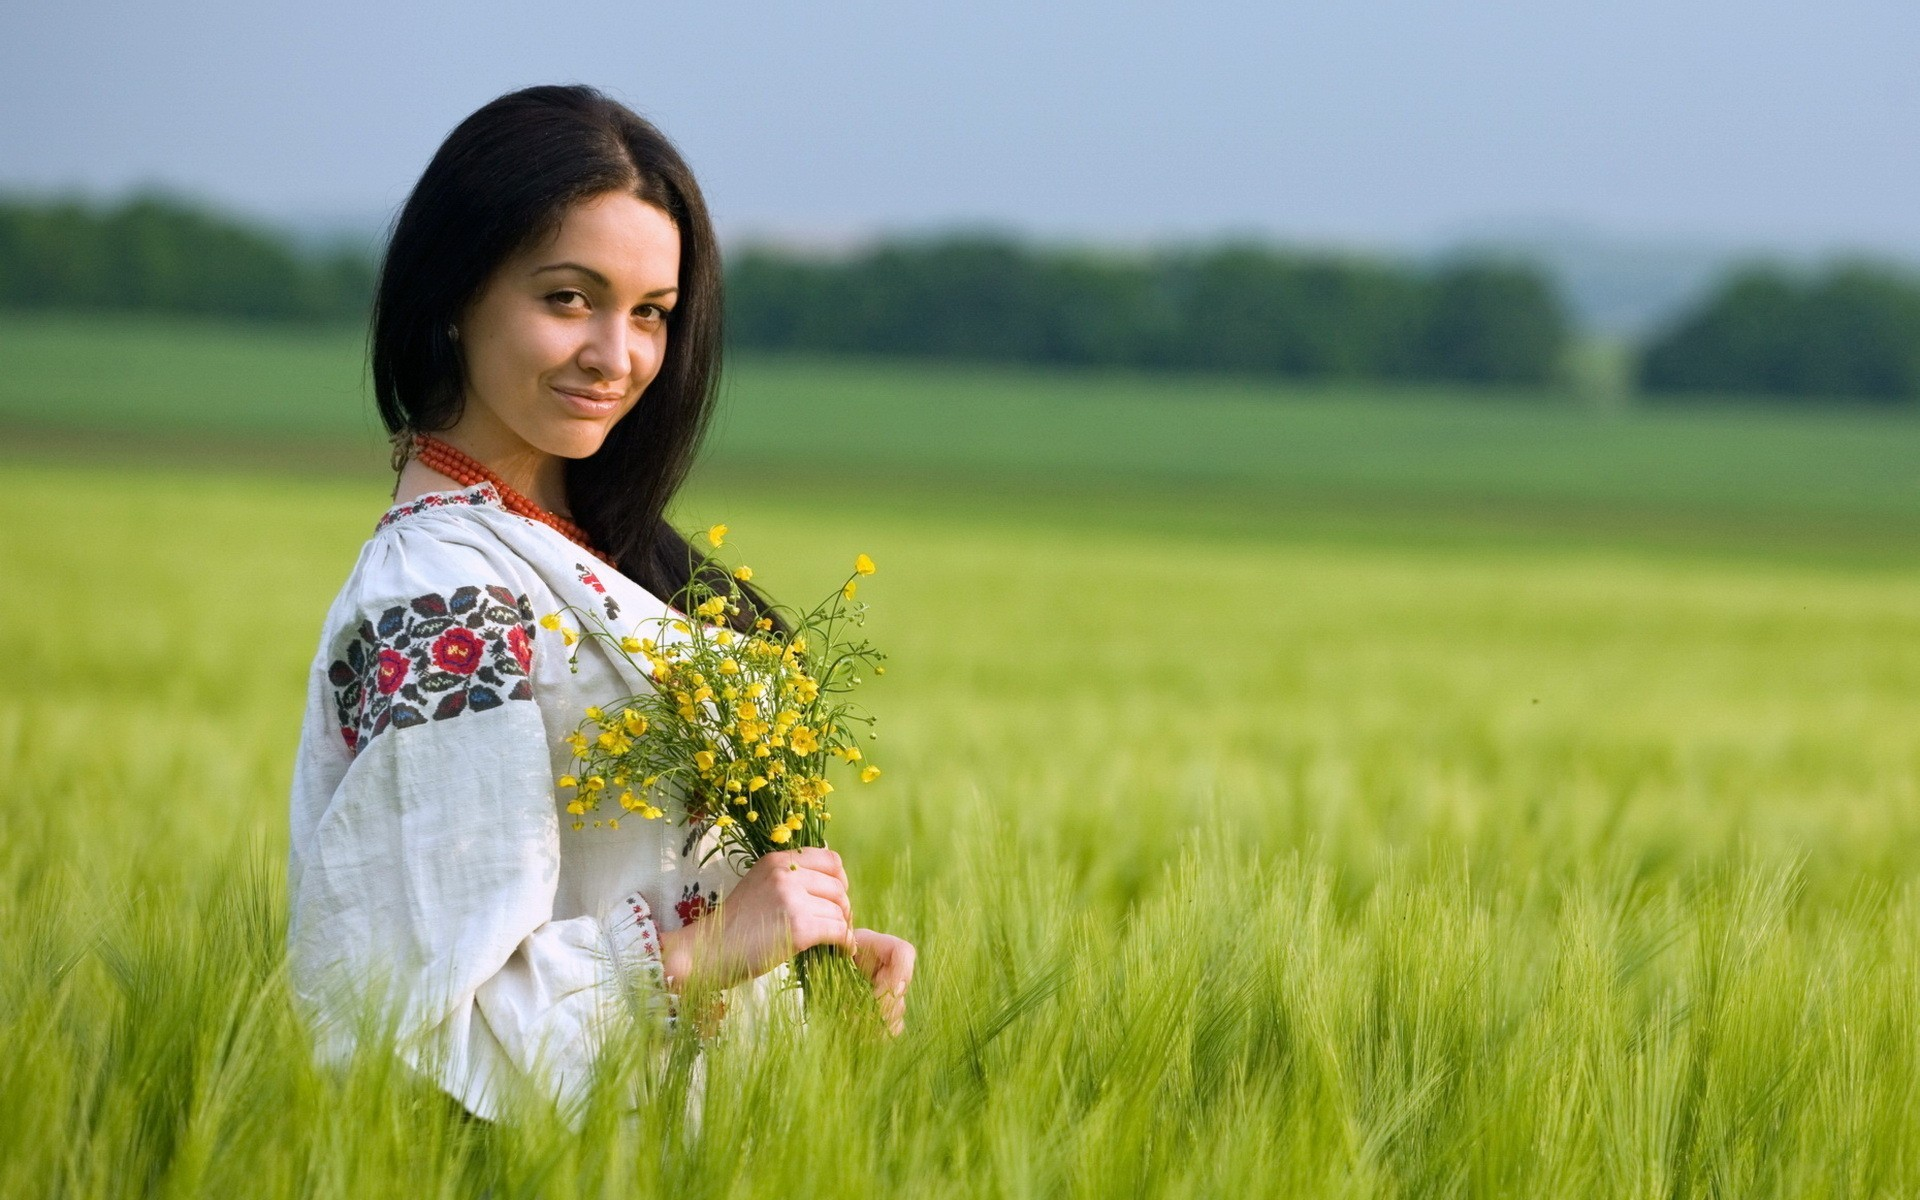 nature grass woman Ukraine HD Wallpaper